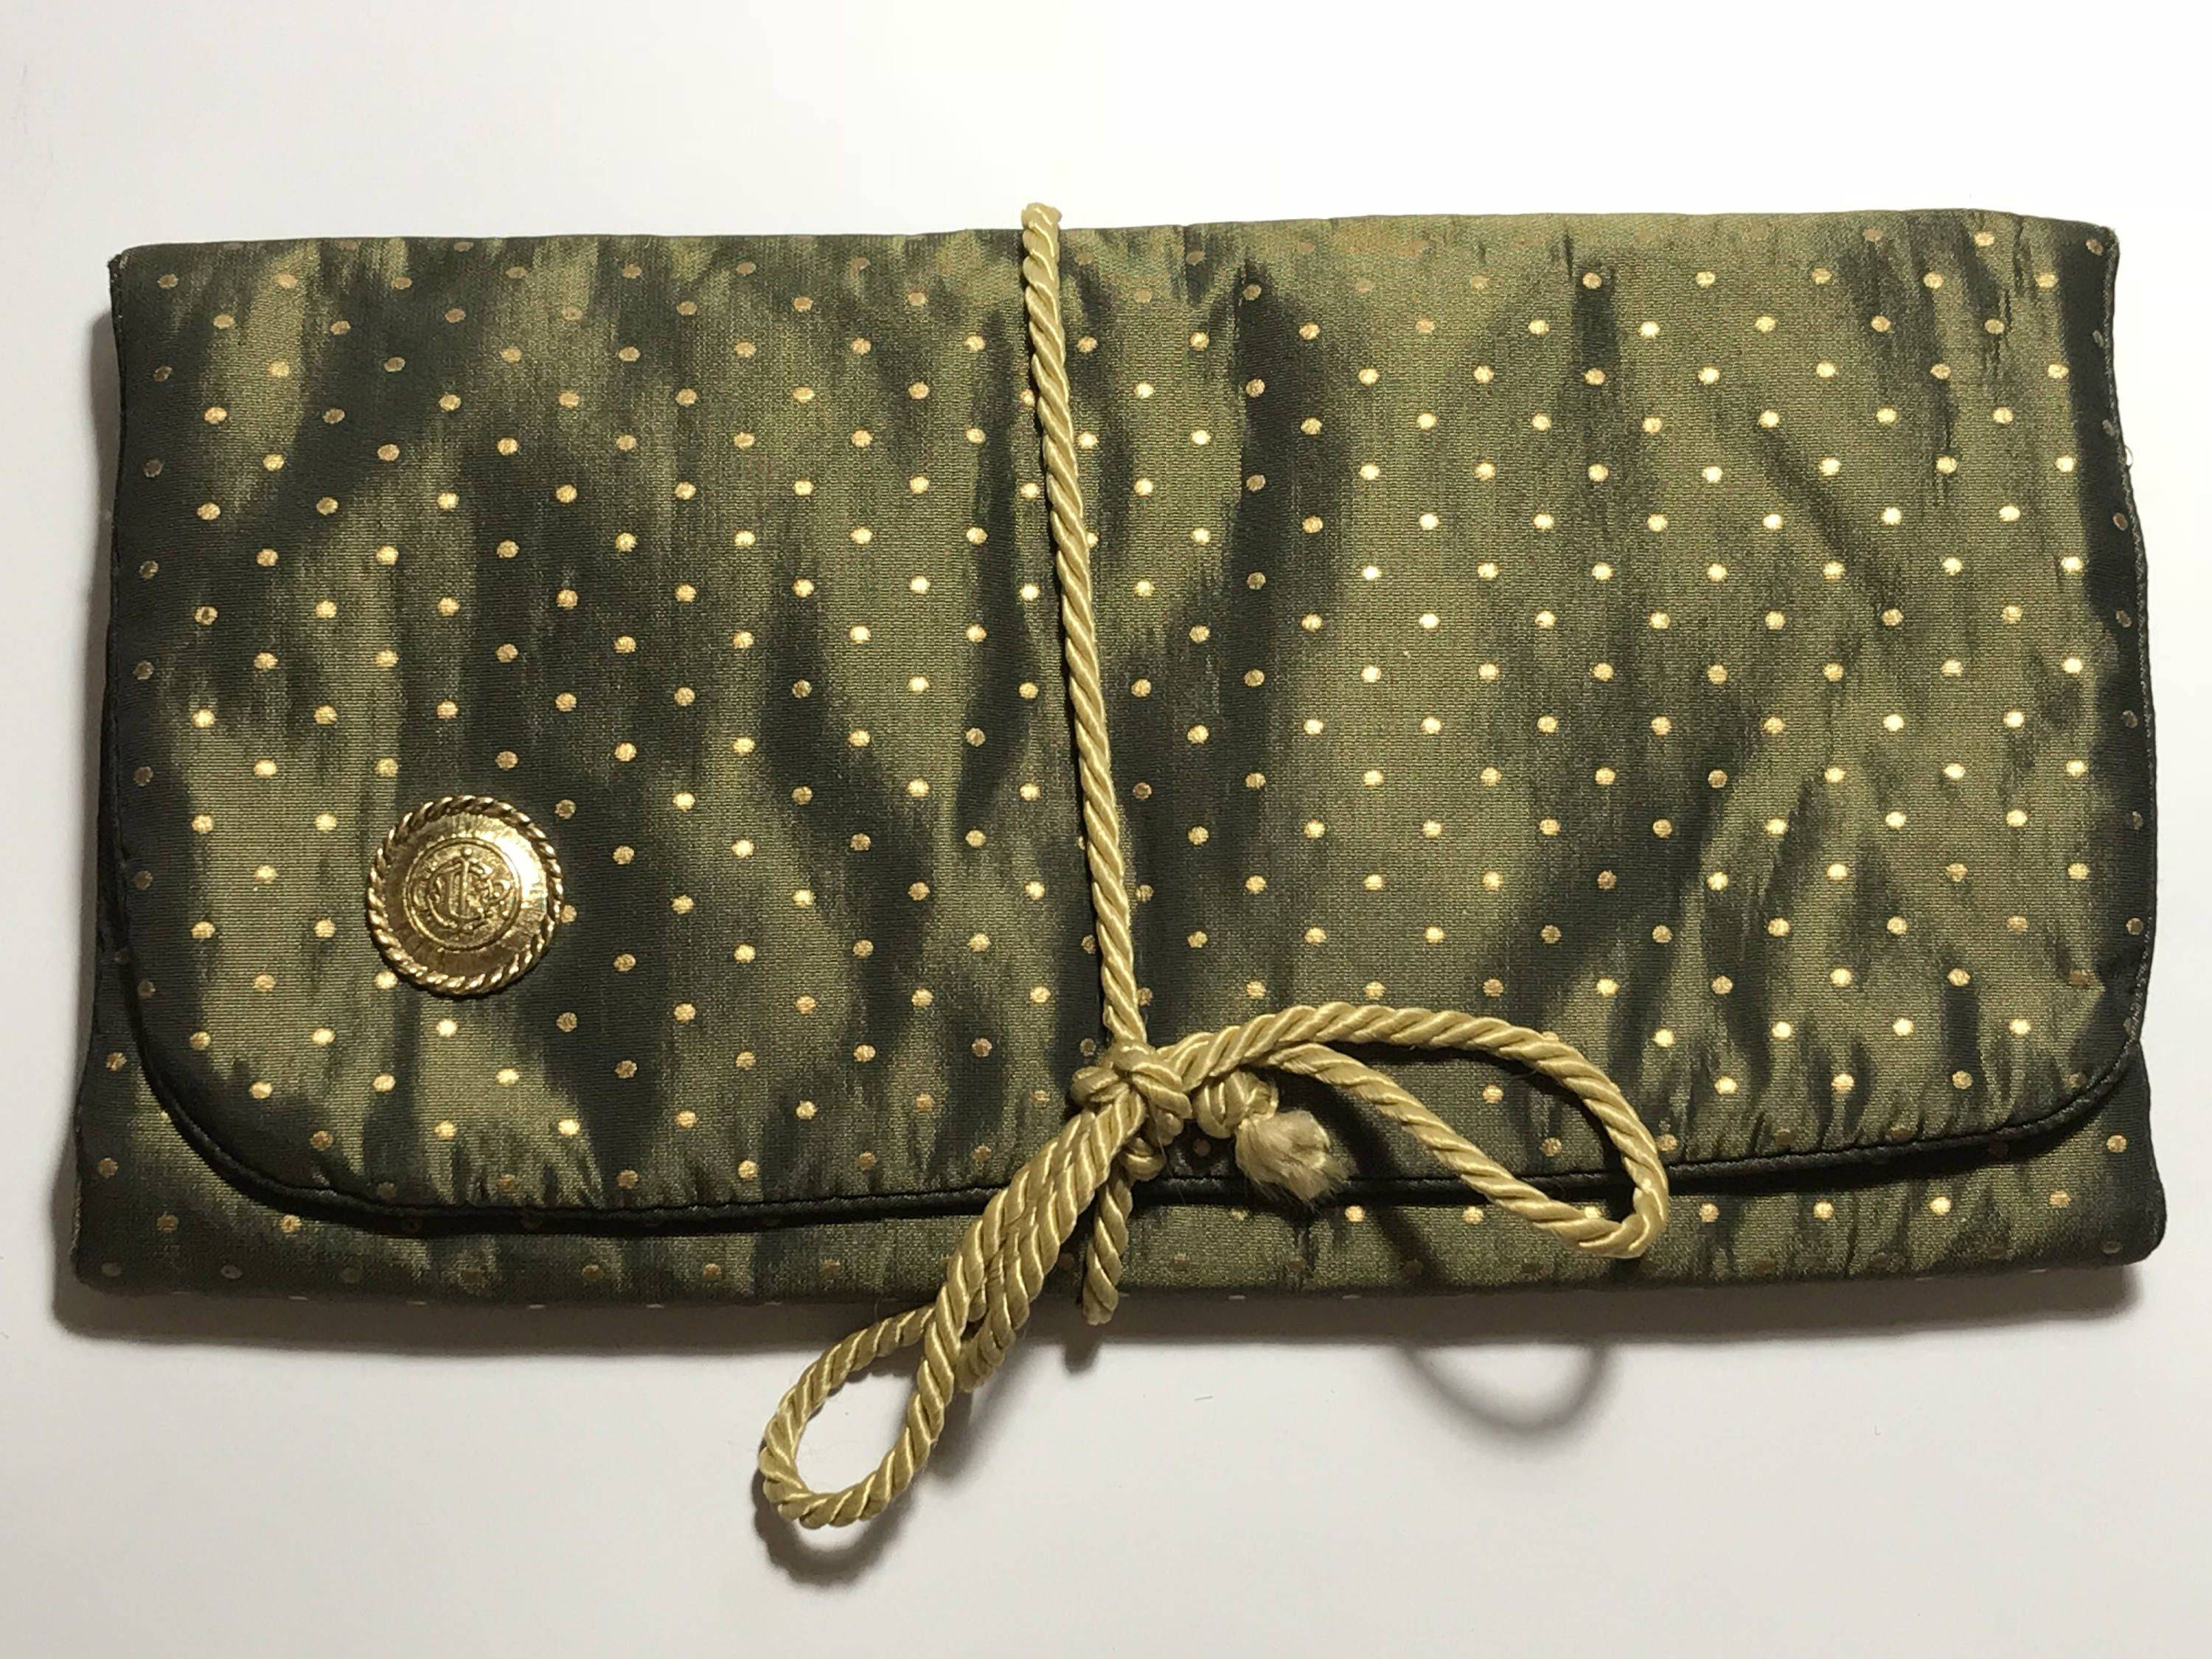 Vintage CHRISTIAN DIOR Travel Toiletry Bag / Trifold